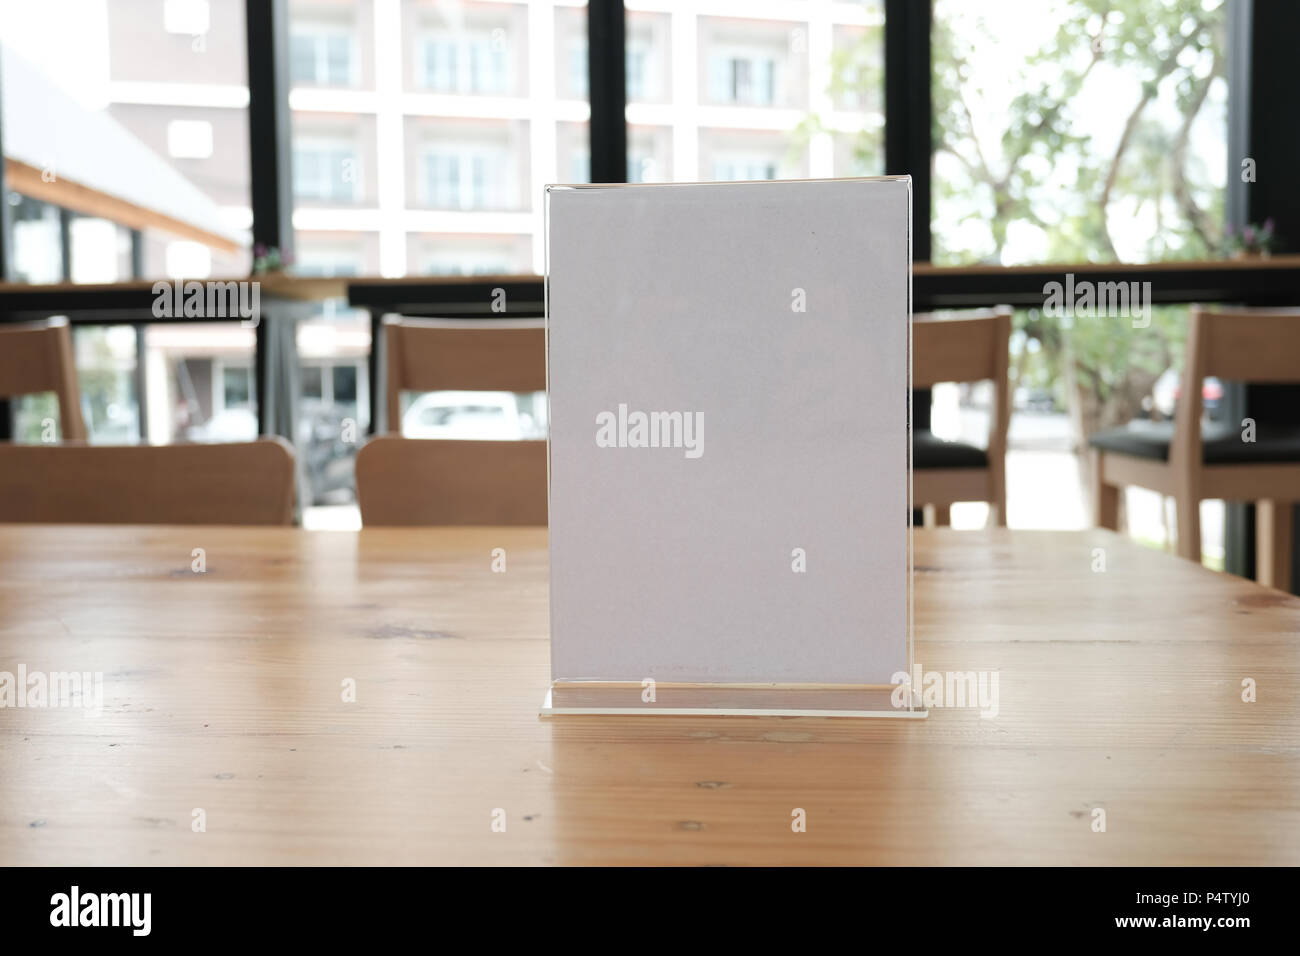 white label in cafe. display stand for acrylic tent card in coffee ...